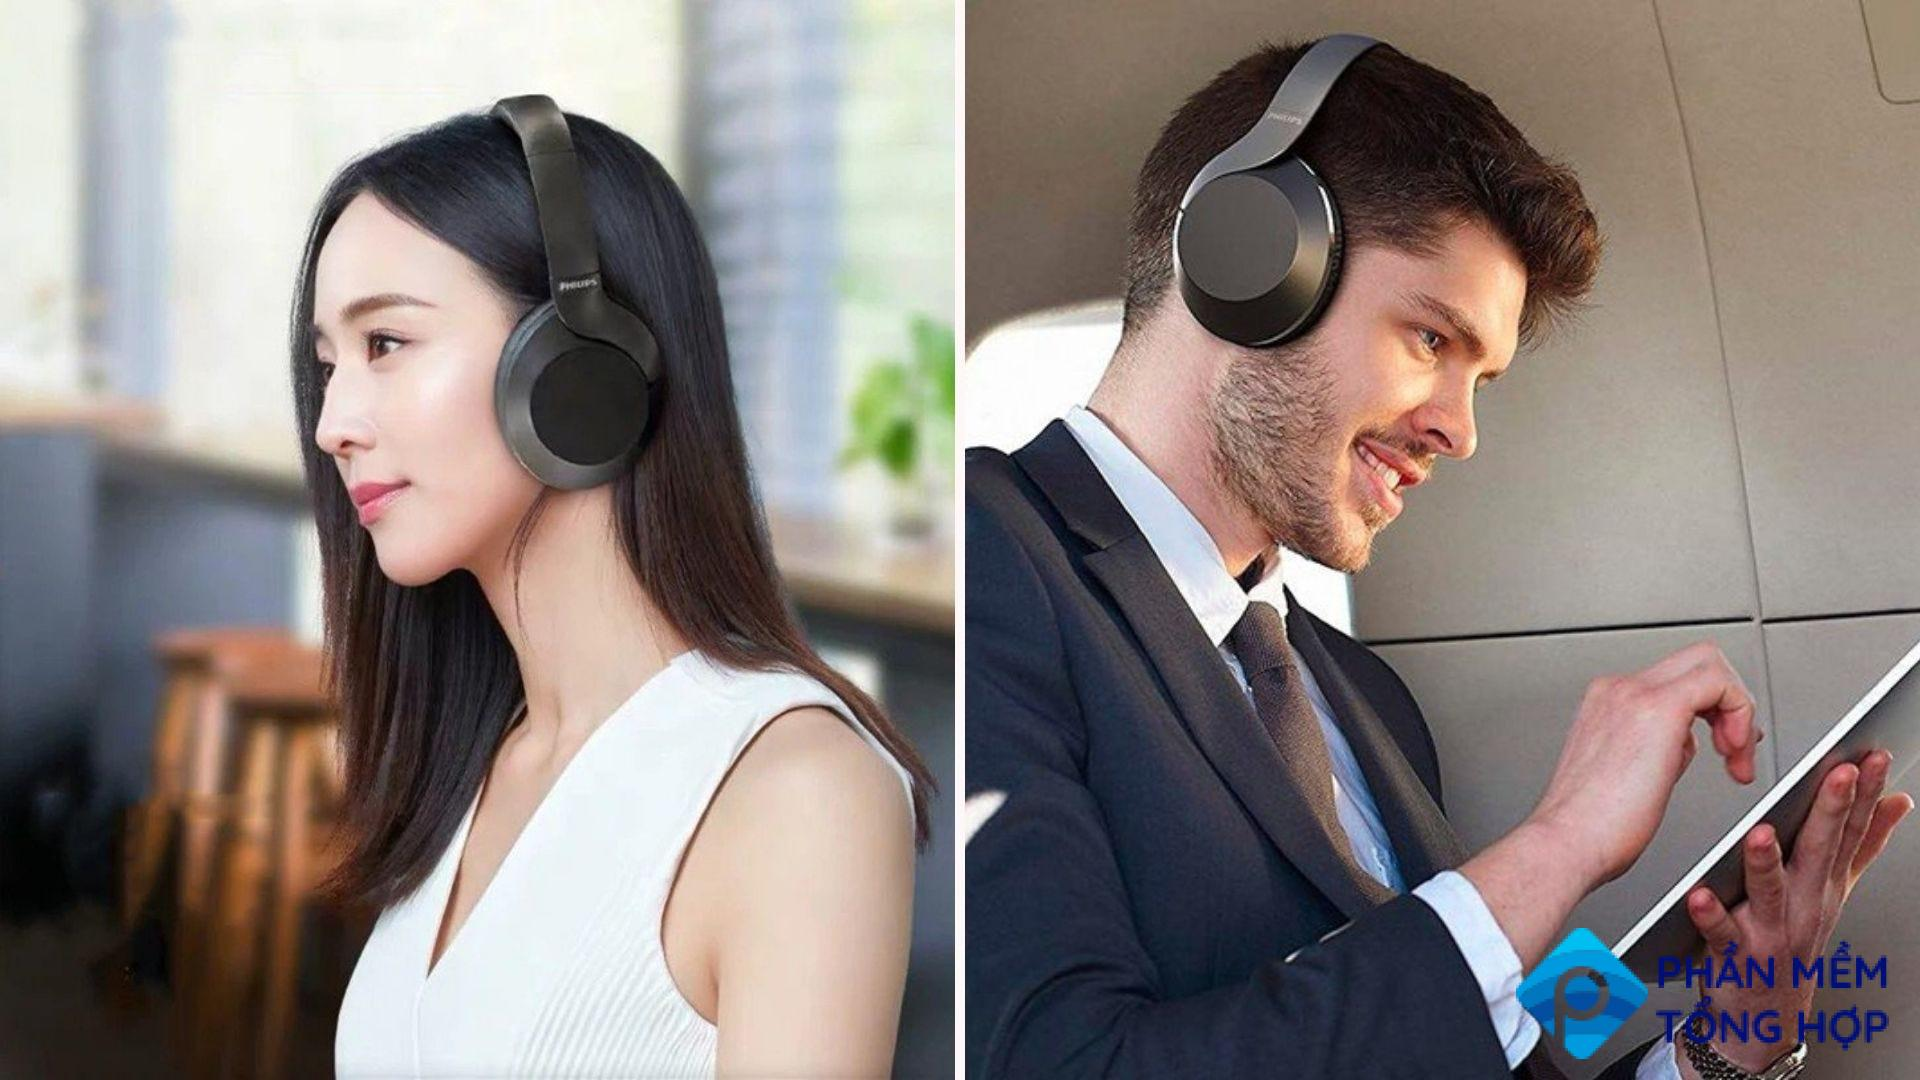 A woman and a man wearing black headphones